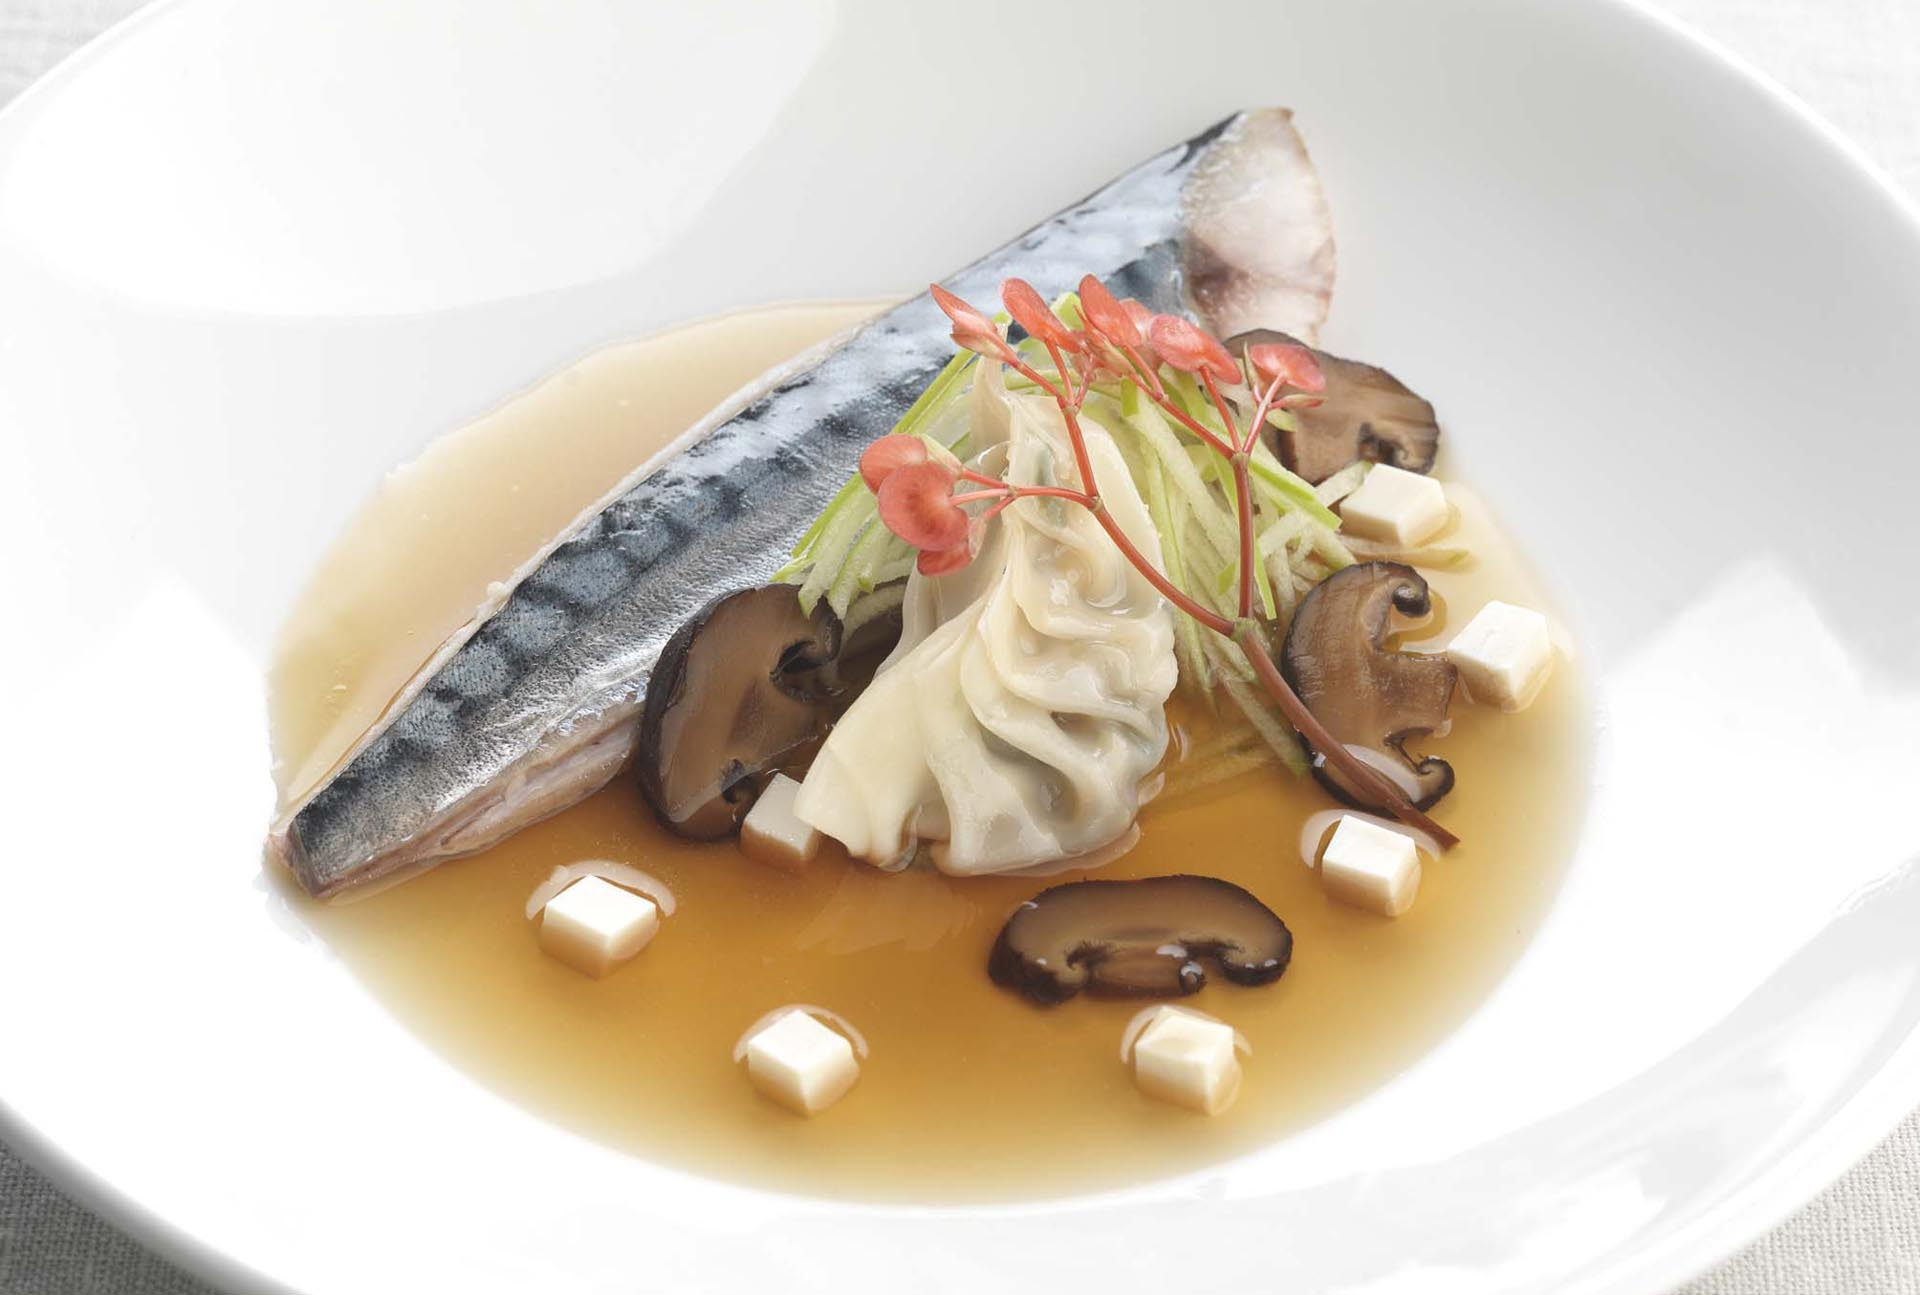 Recipe: Dashi poached mackerel, soy infused shiitake and tofu gyoza, Granny Smith apple